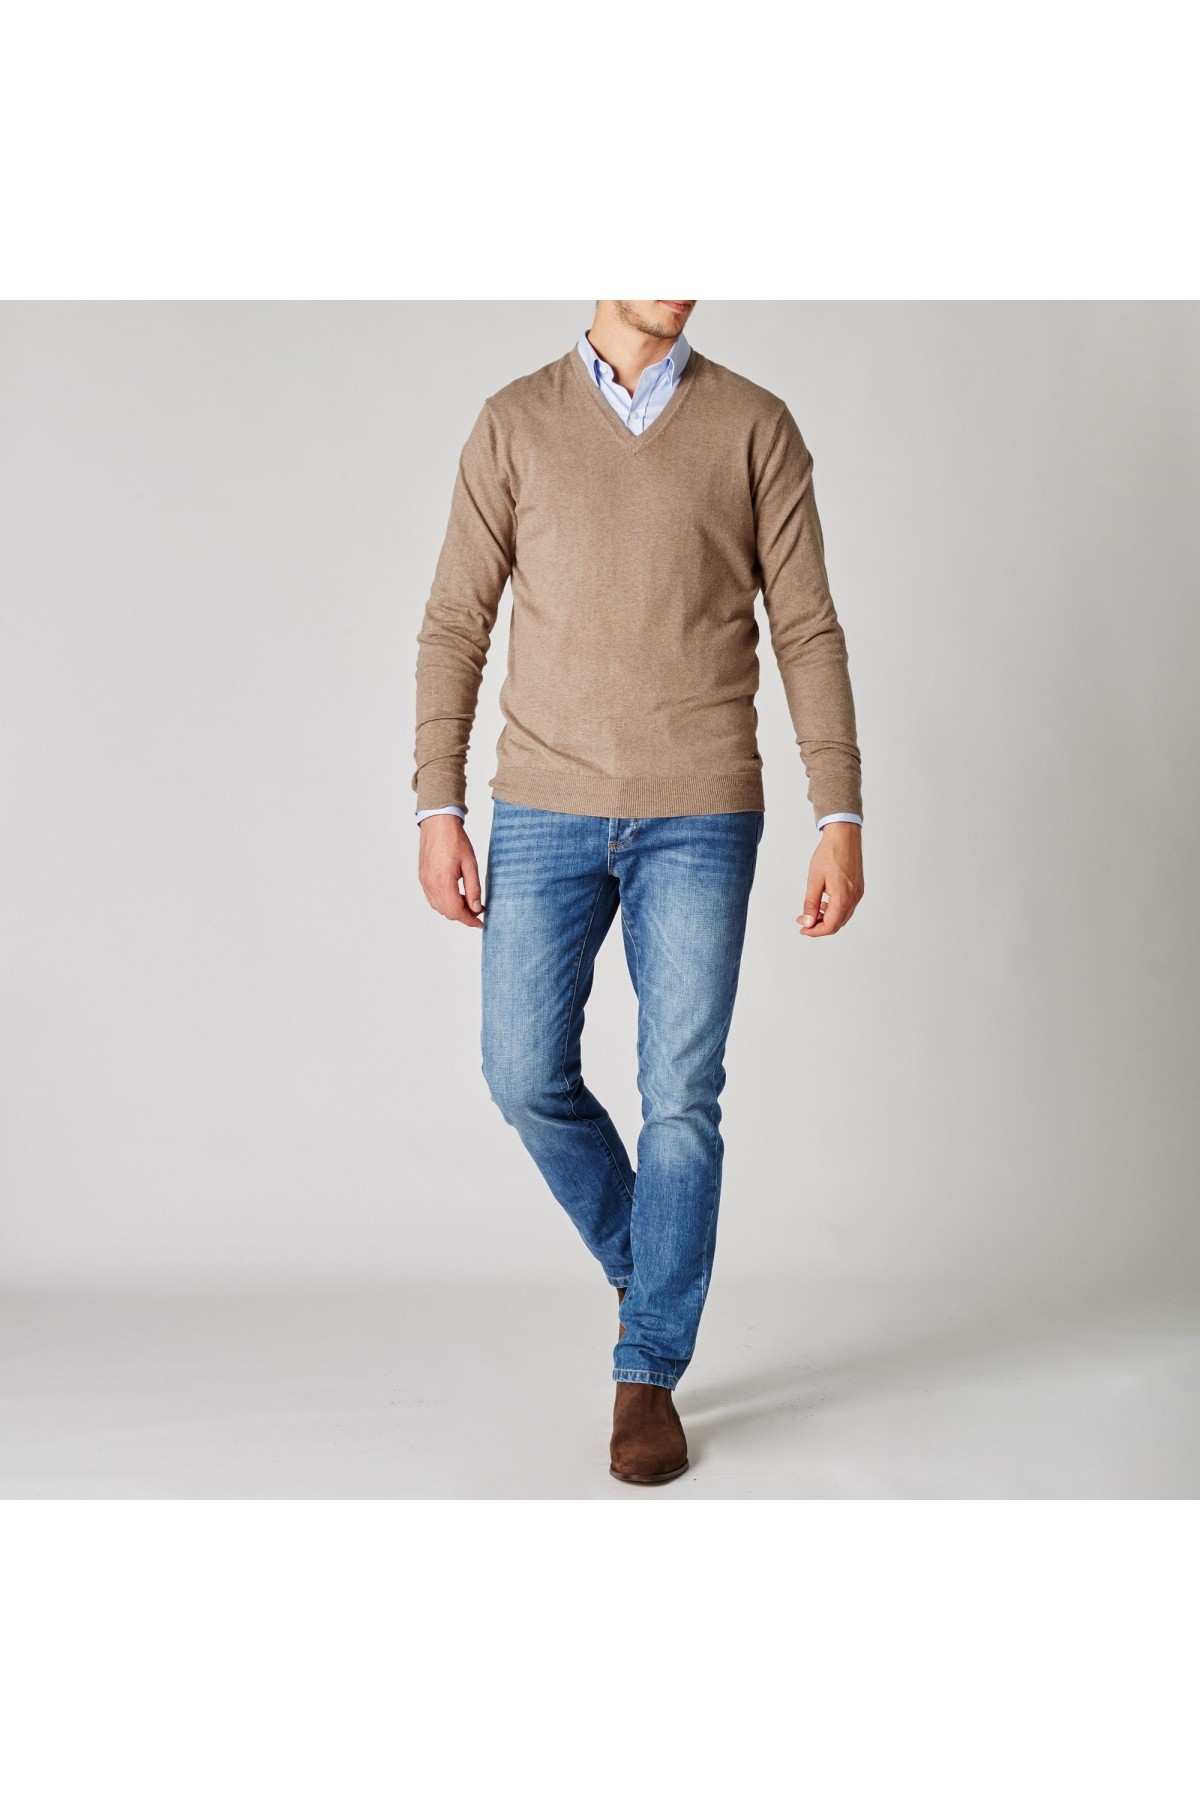 Taupe Blind Sweater Poker Sweaters Jaqk Poker Clothing